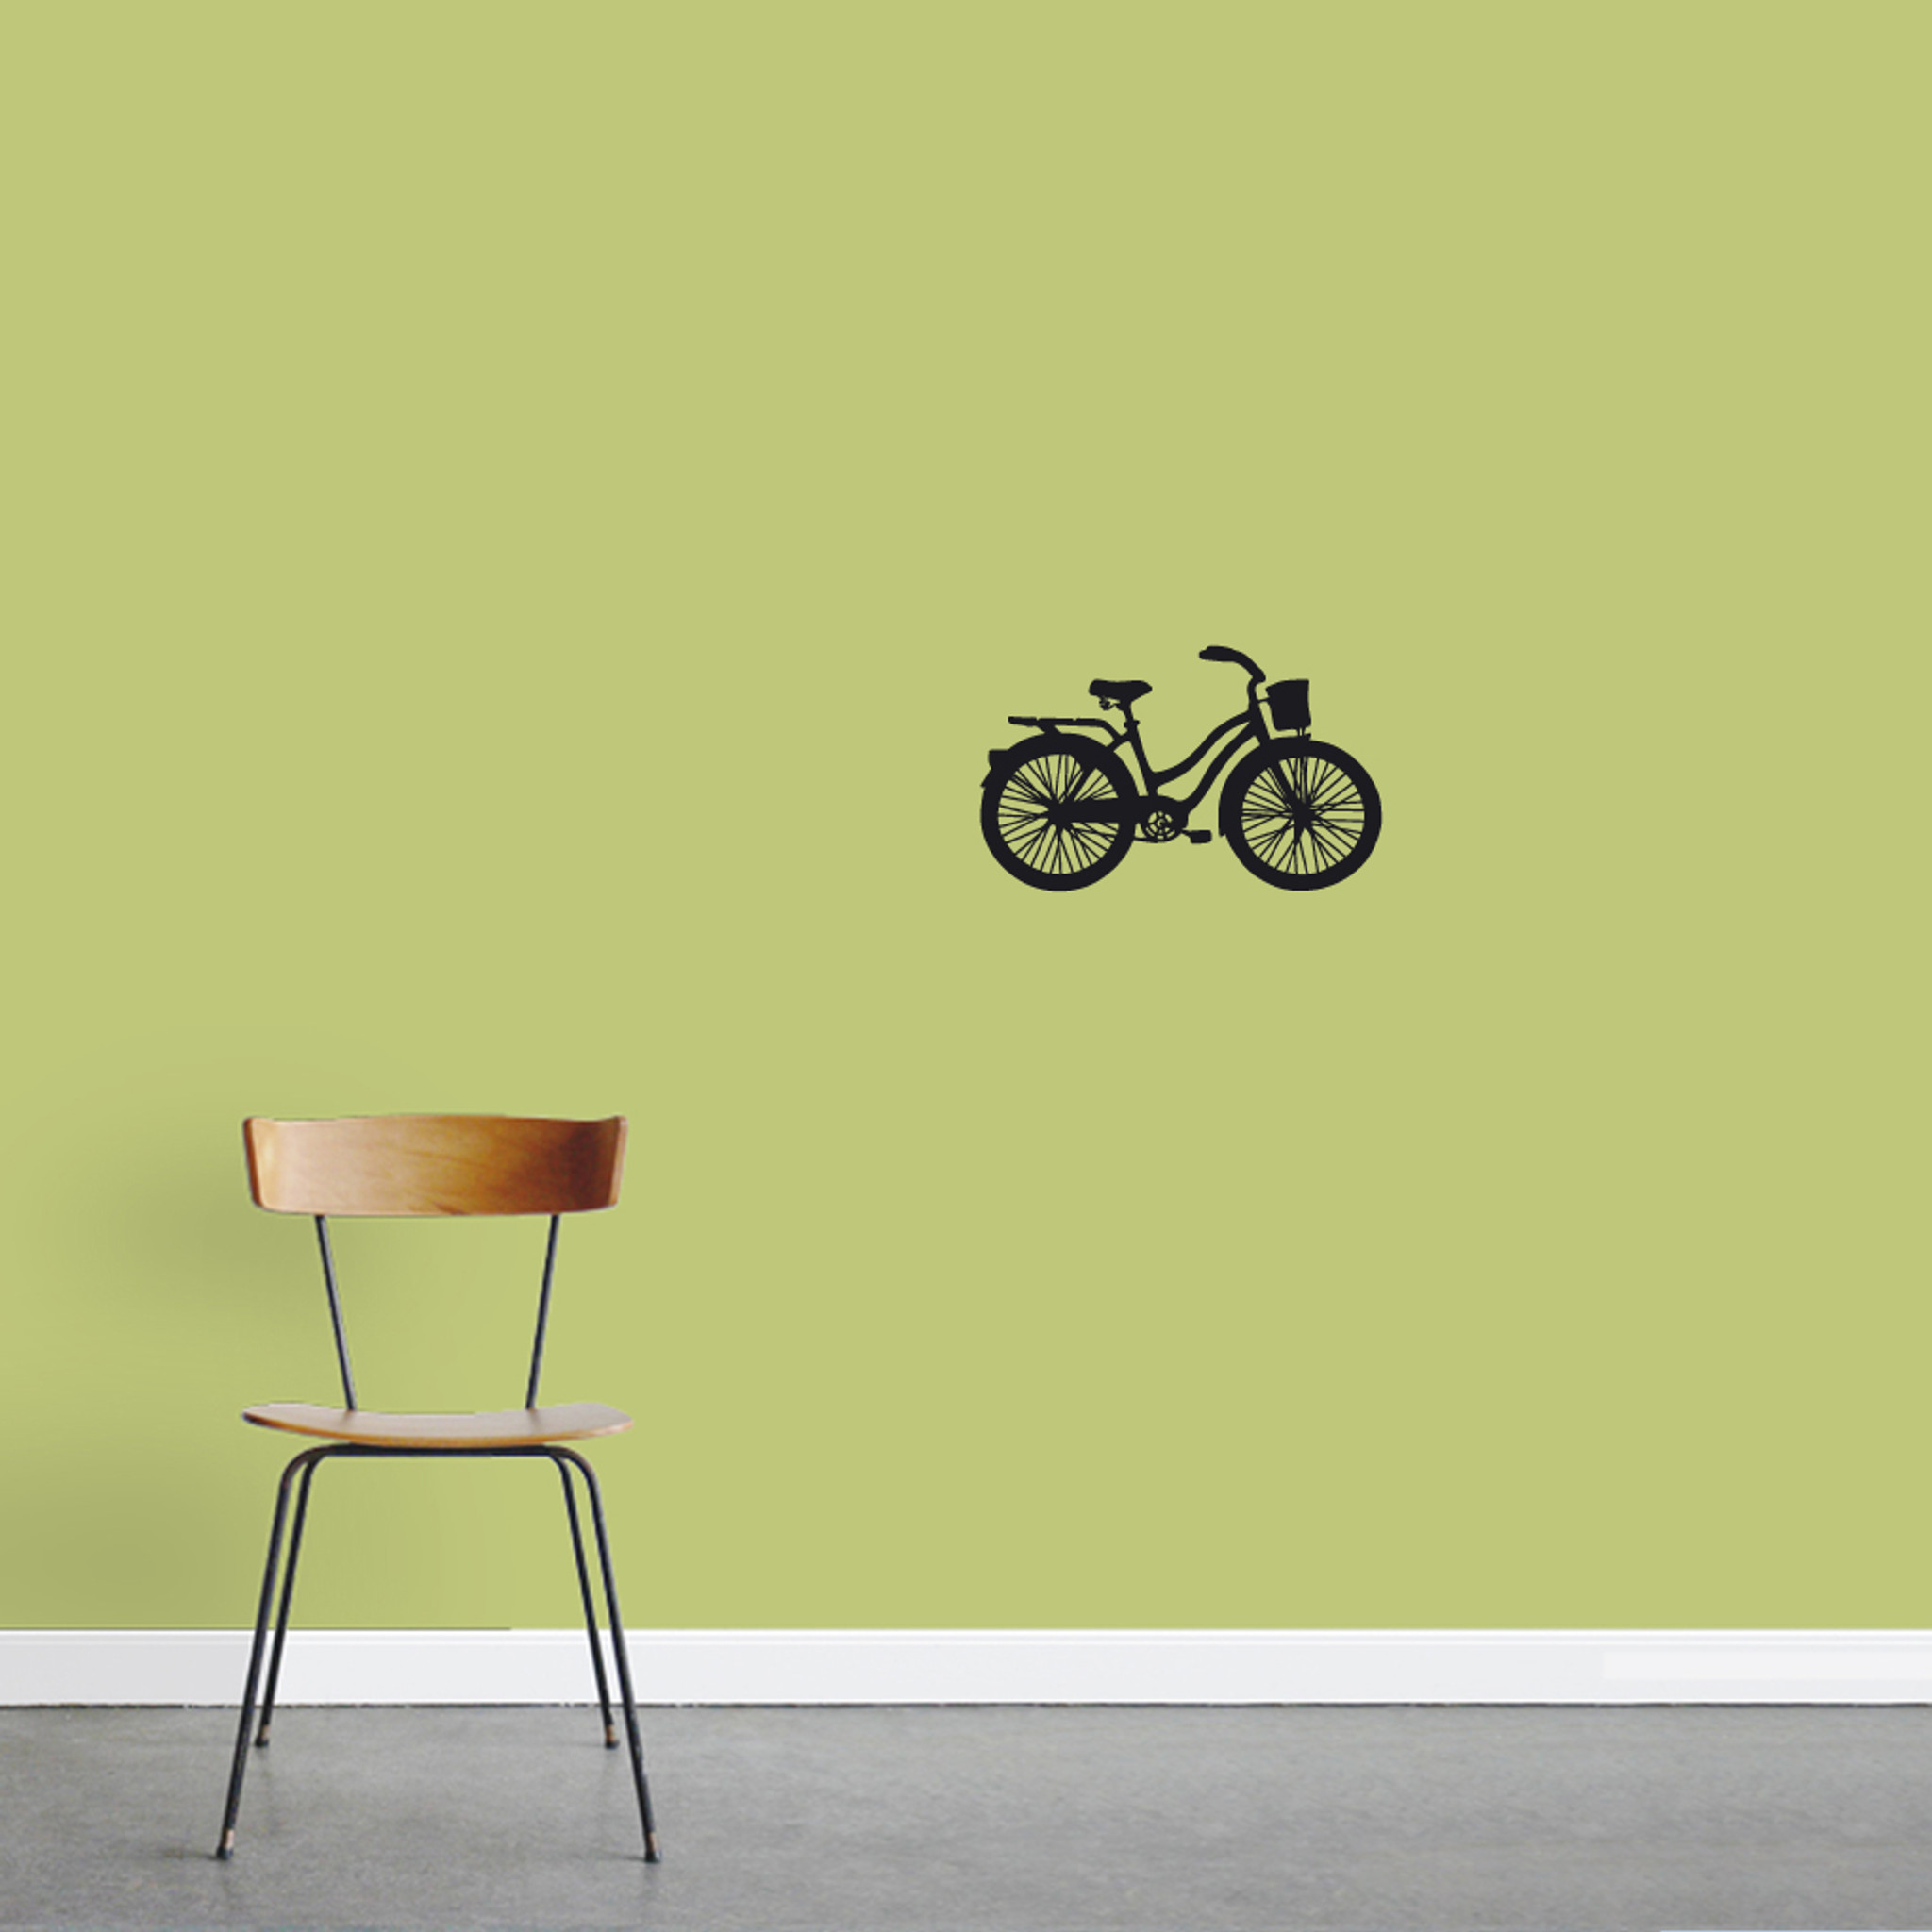 Vintage Cruiser Bike Wall Decals 18  wide x 11  tall S≤ Image & Vintage Cruiser Bike Wall Decals and Wall stickers